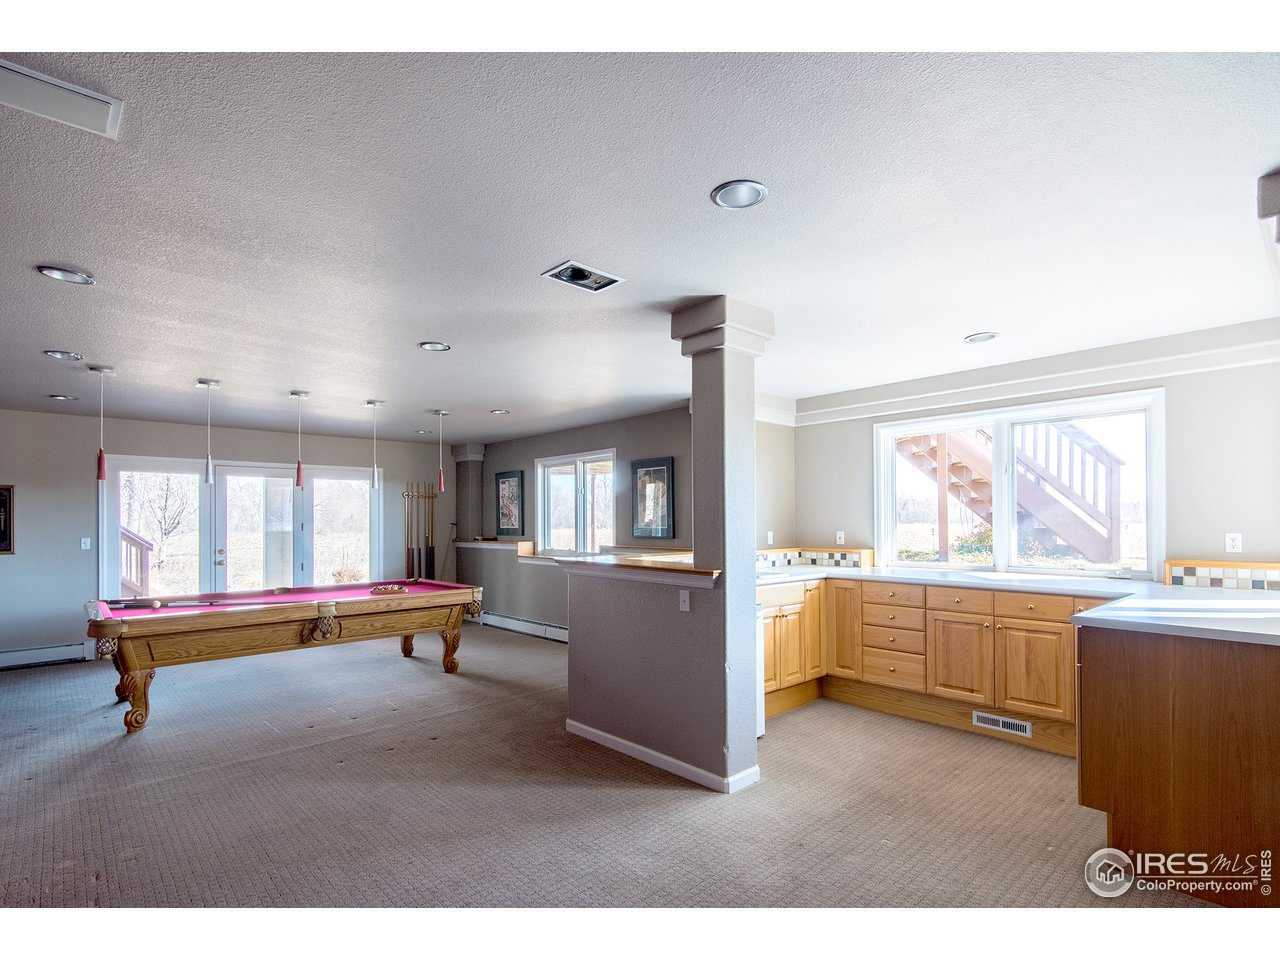 Rec room with wet bar. Pool table stays!